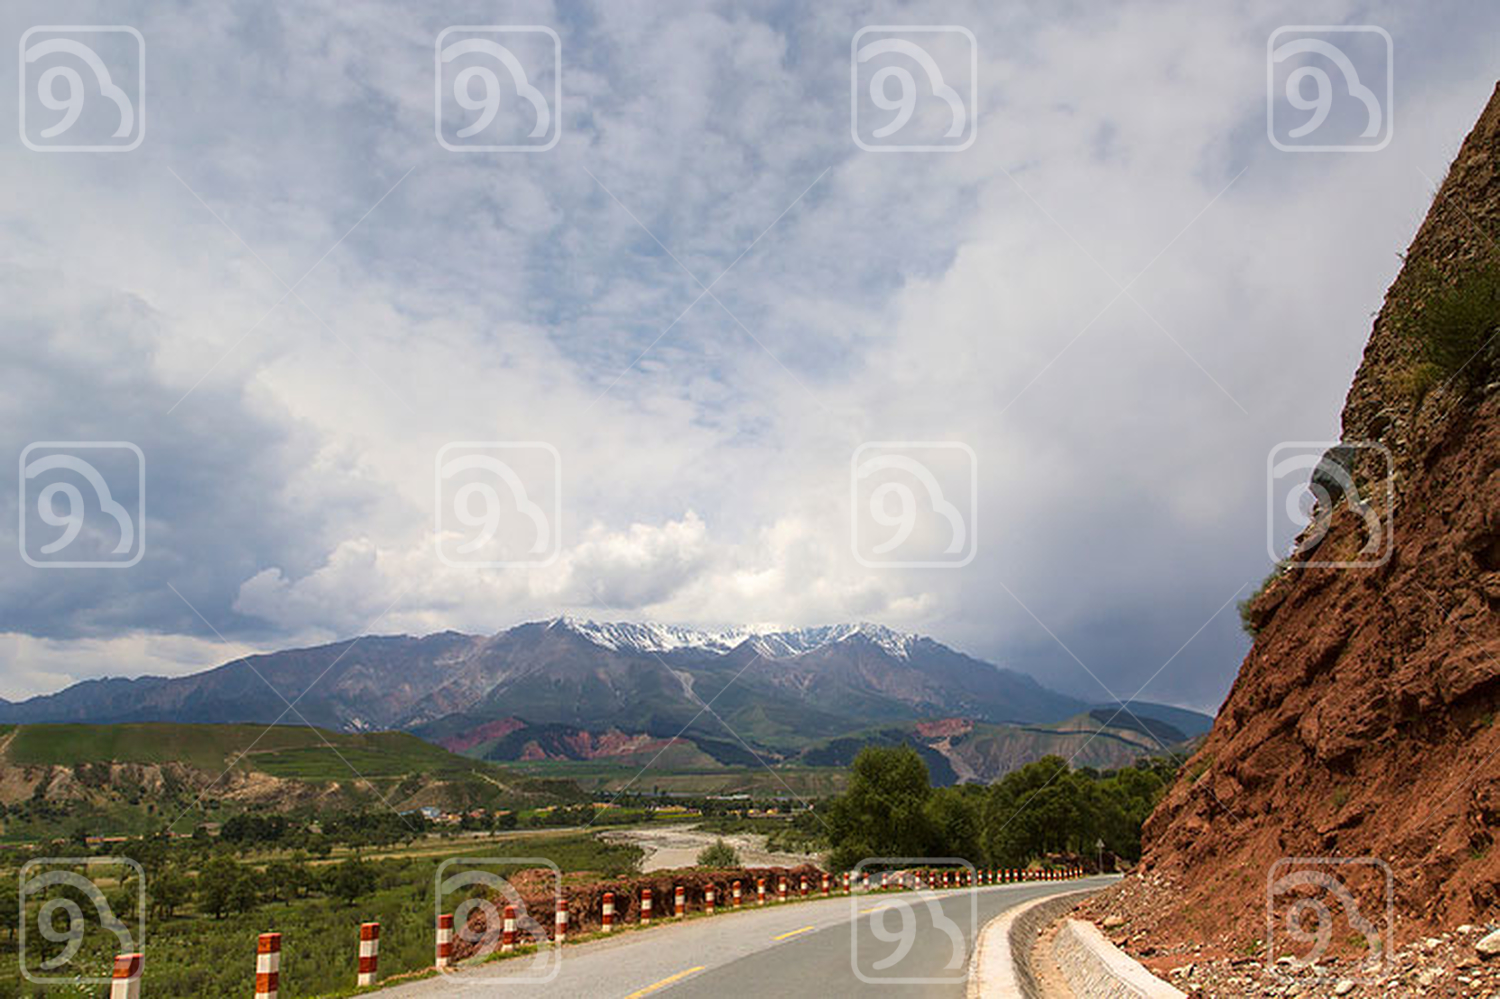 Road in Qinghai province, China